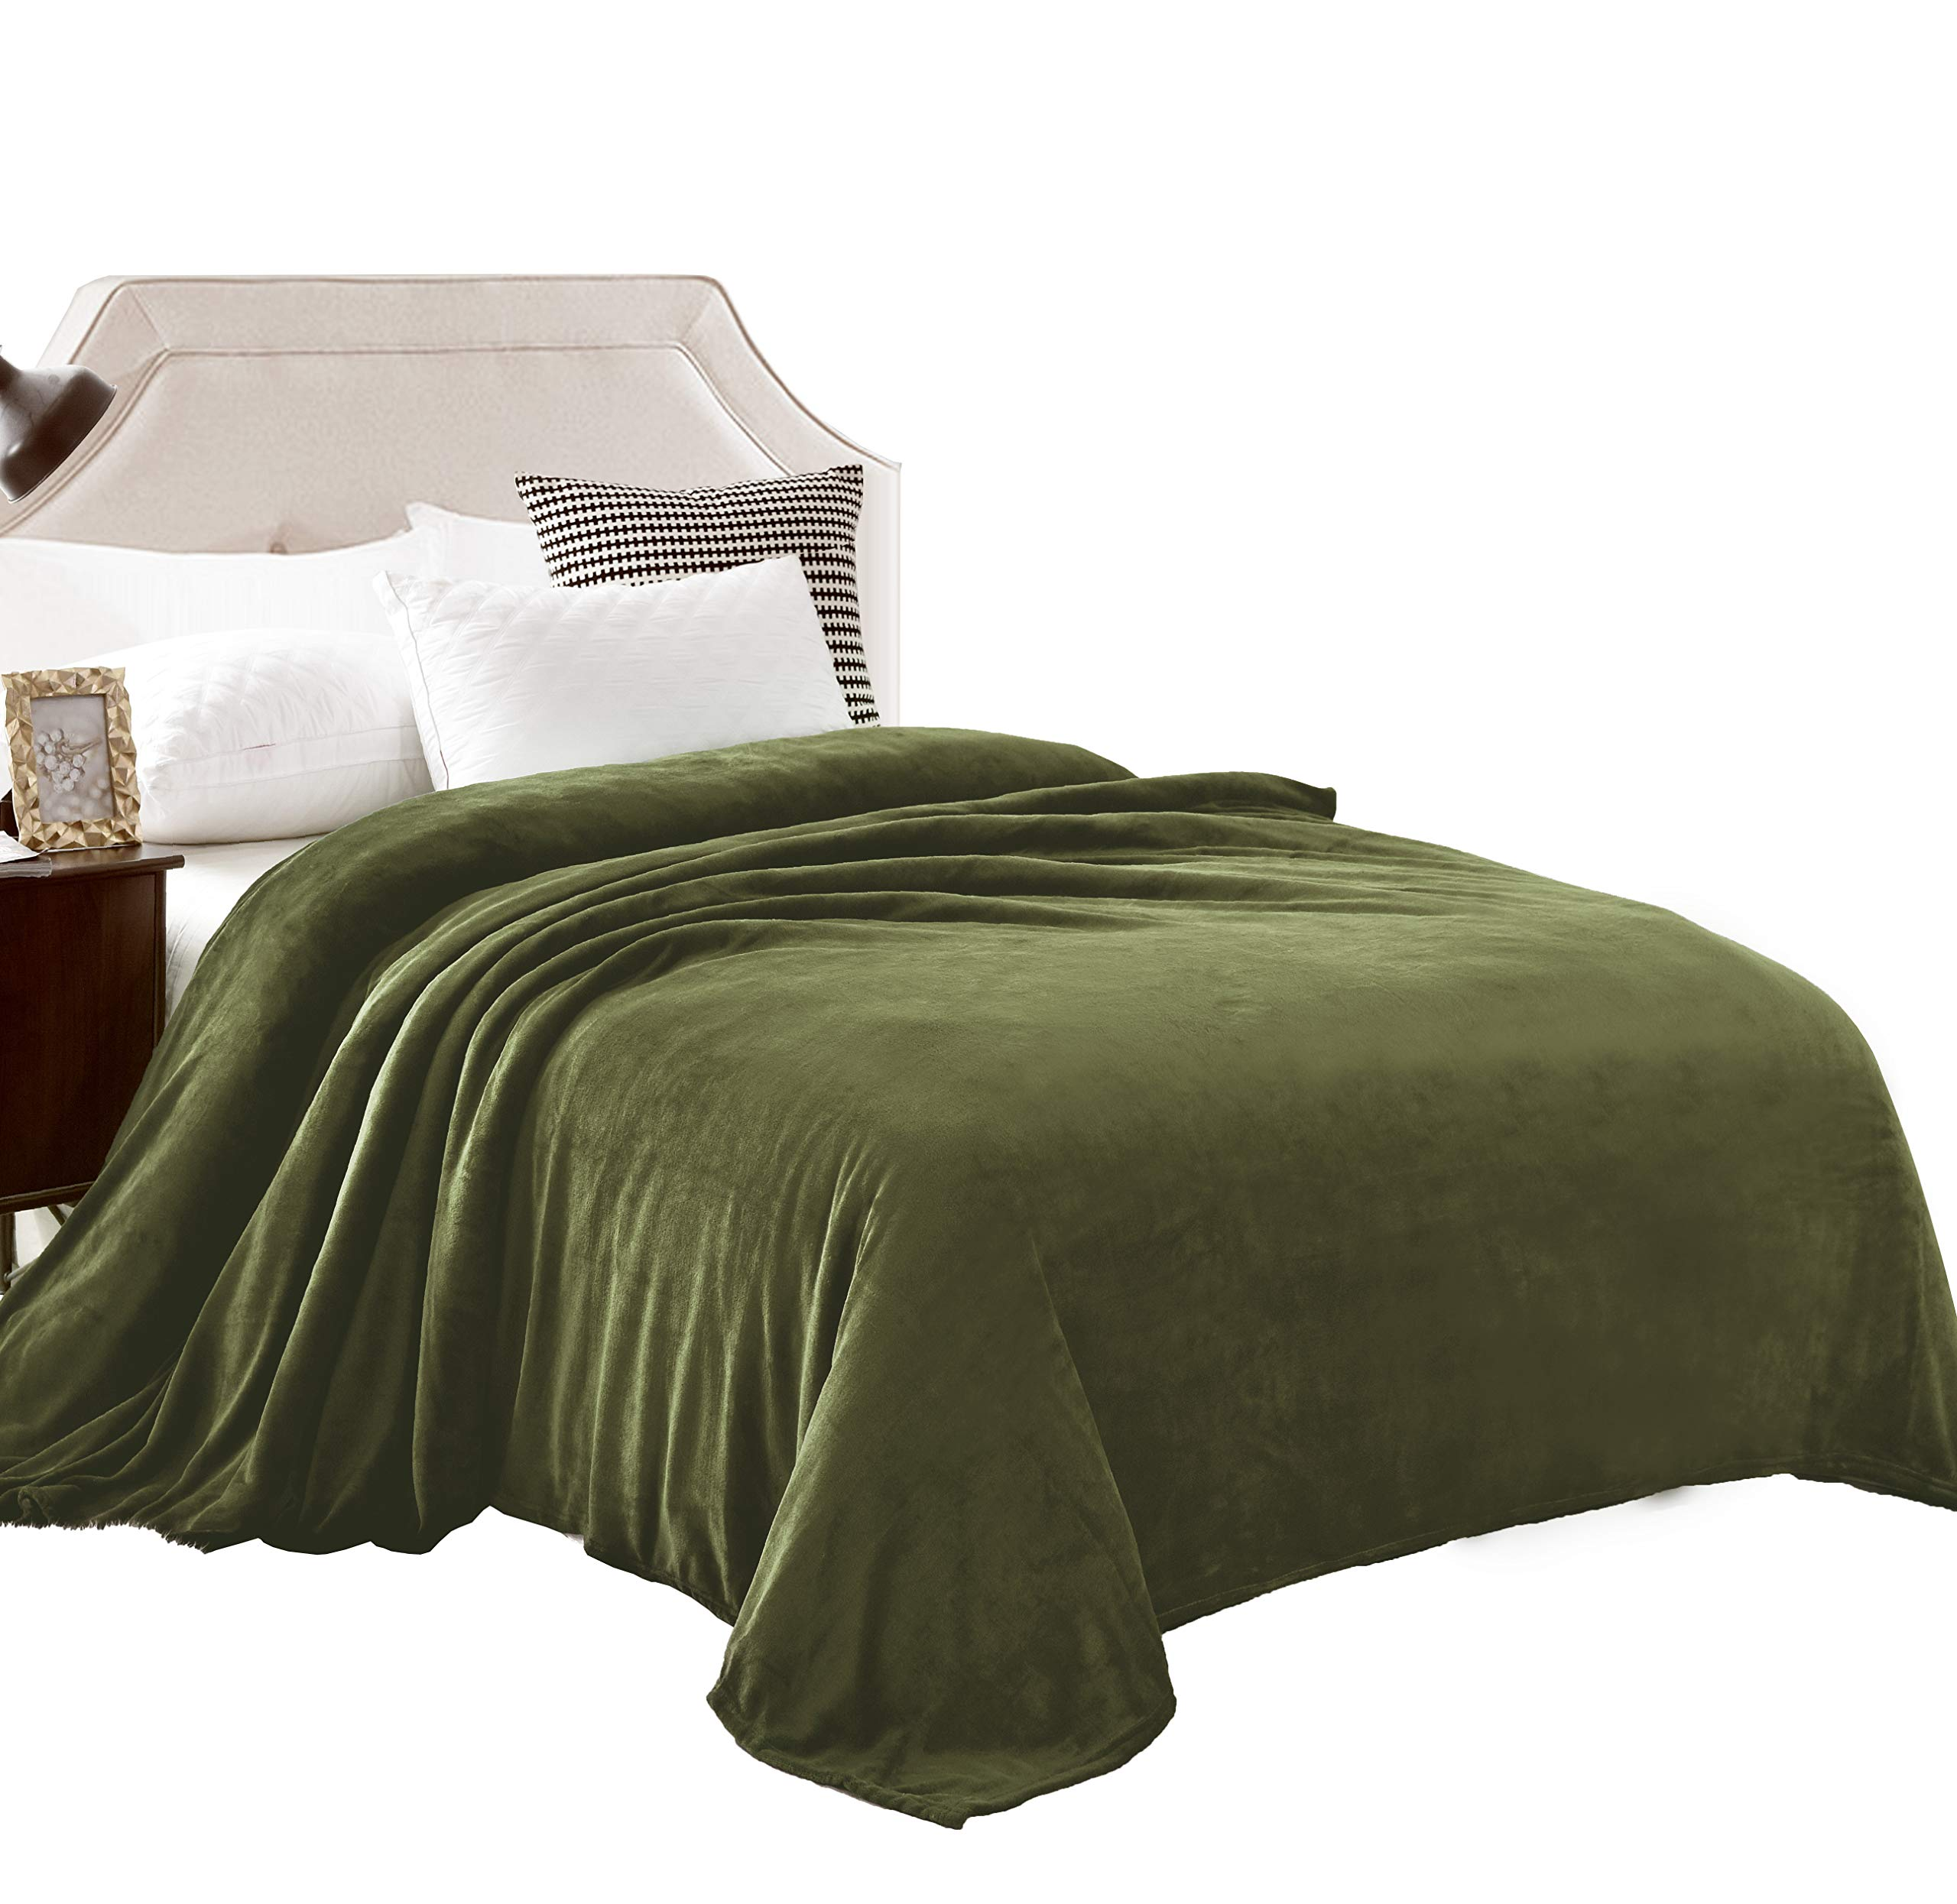 """Exclusivo Mezcla Twin Size Flannel Fleece Velvet Plush Bed Blanket as Bedspread/Coverlet/Bed Cover (60"""" x 80"""", Olive Green) - Soft, Lightweight, Warm and Cozy"""